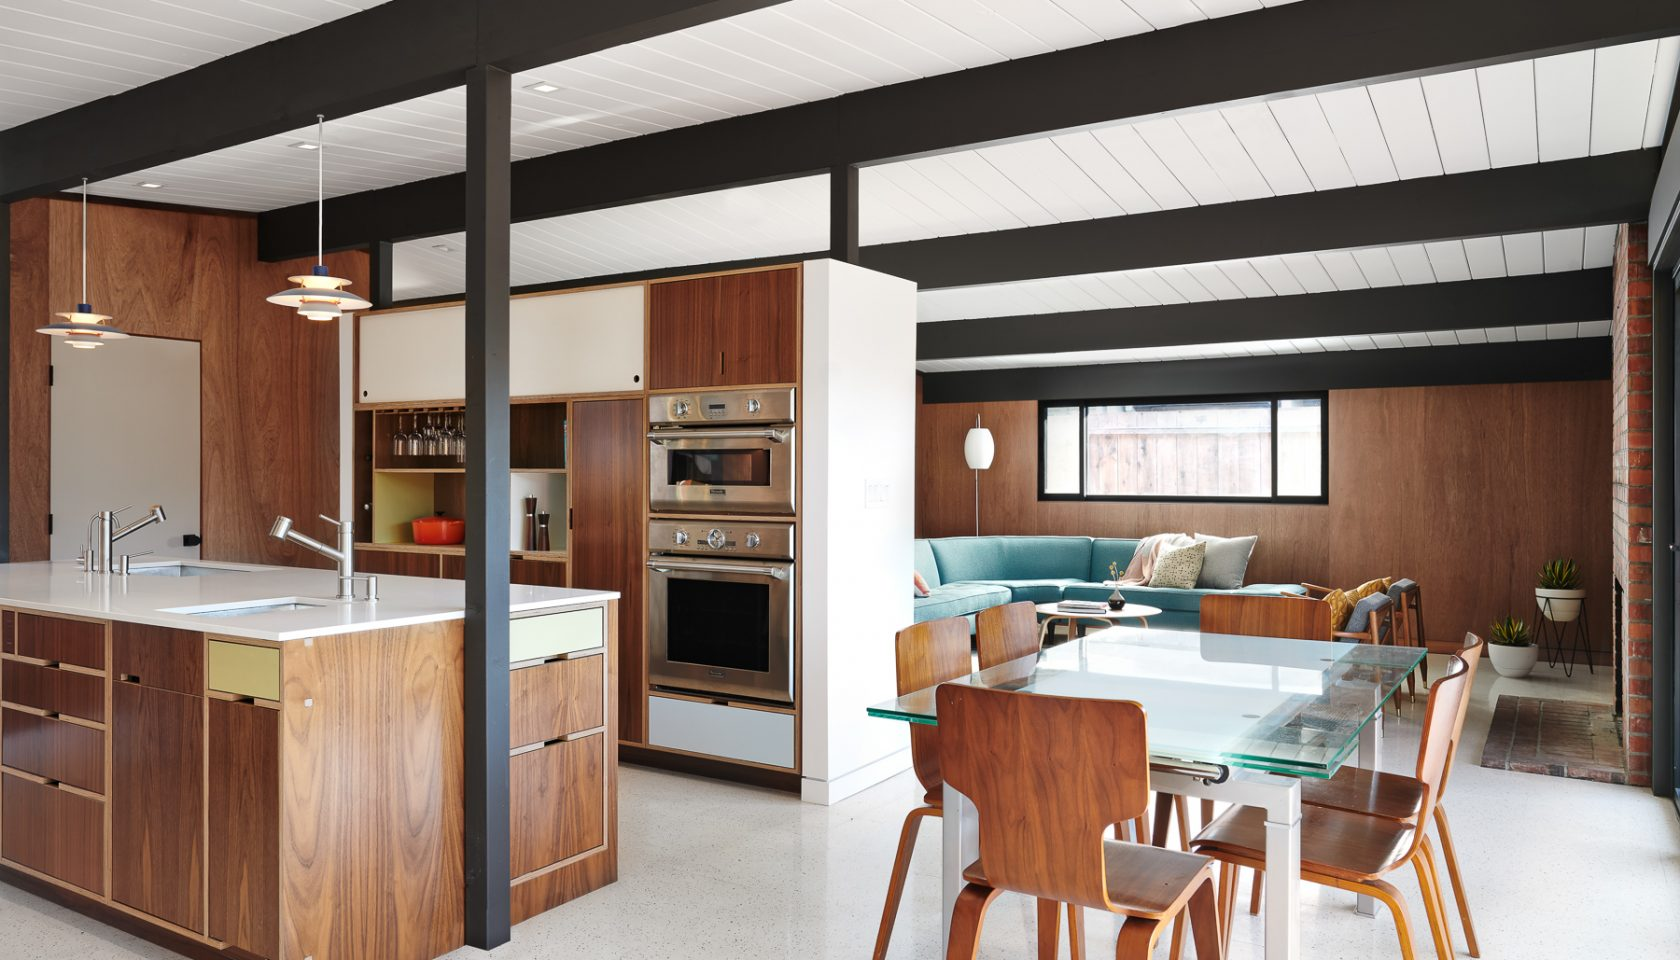 A mid-century renovation